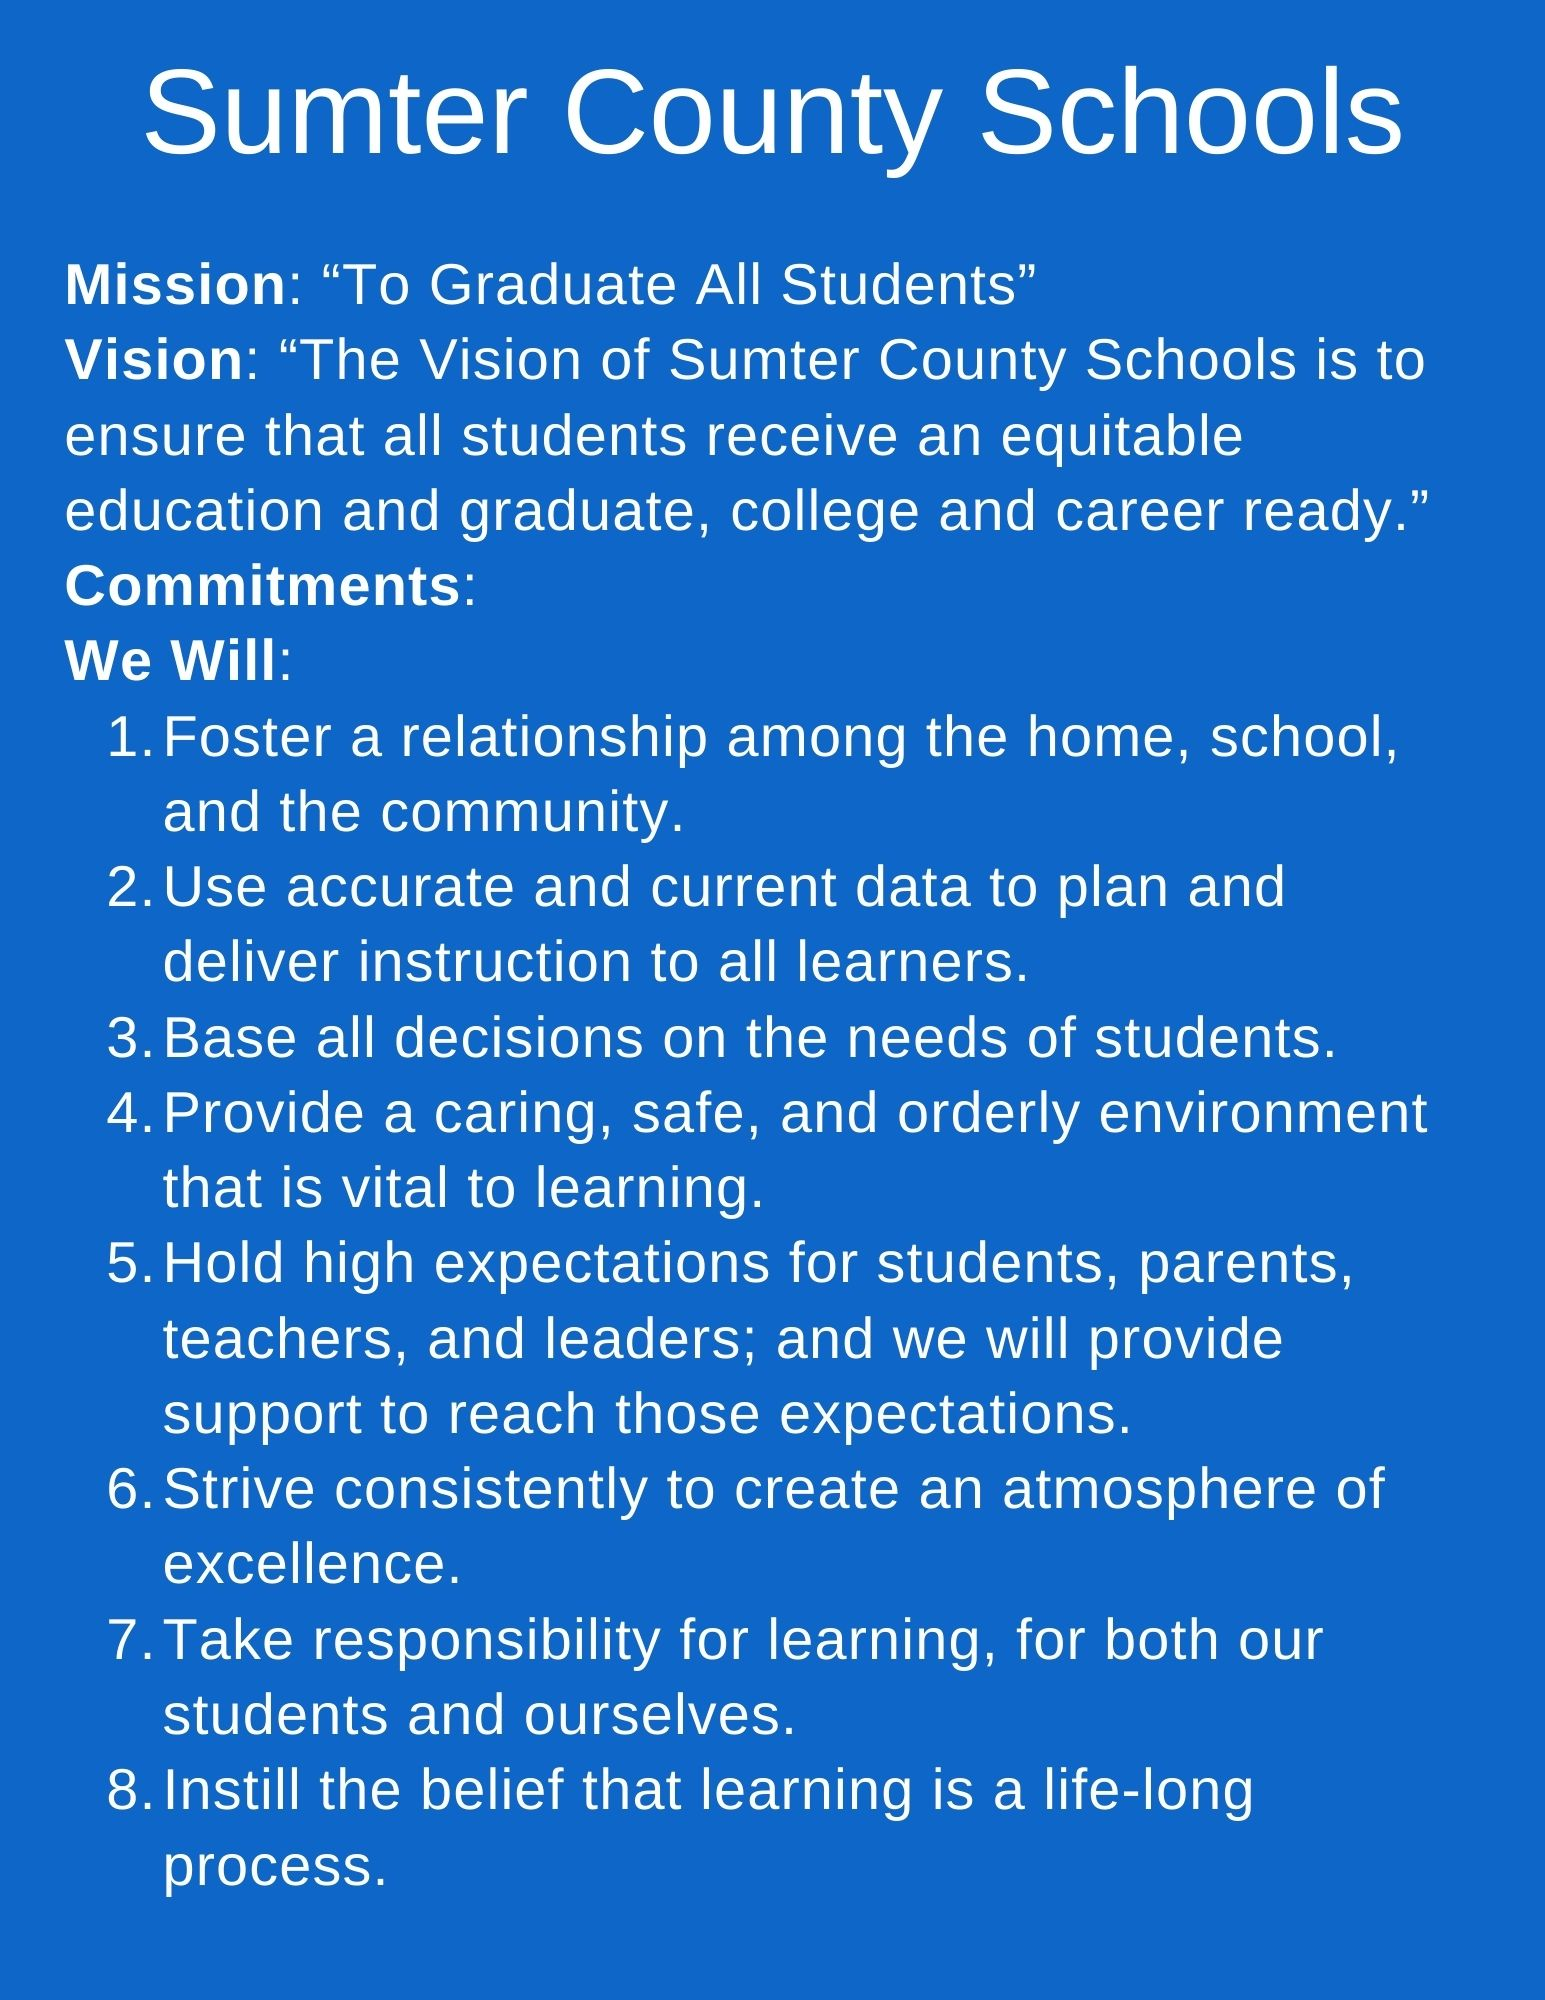 Sumter County Schools Mission and Vision Statement